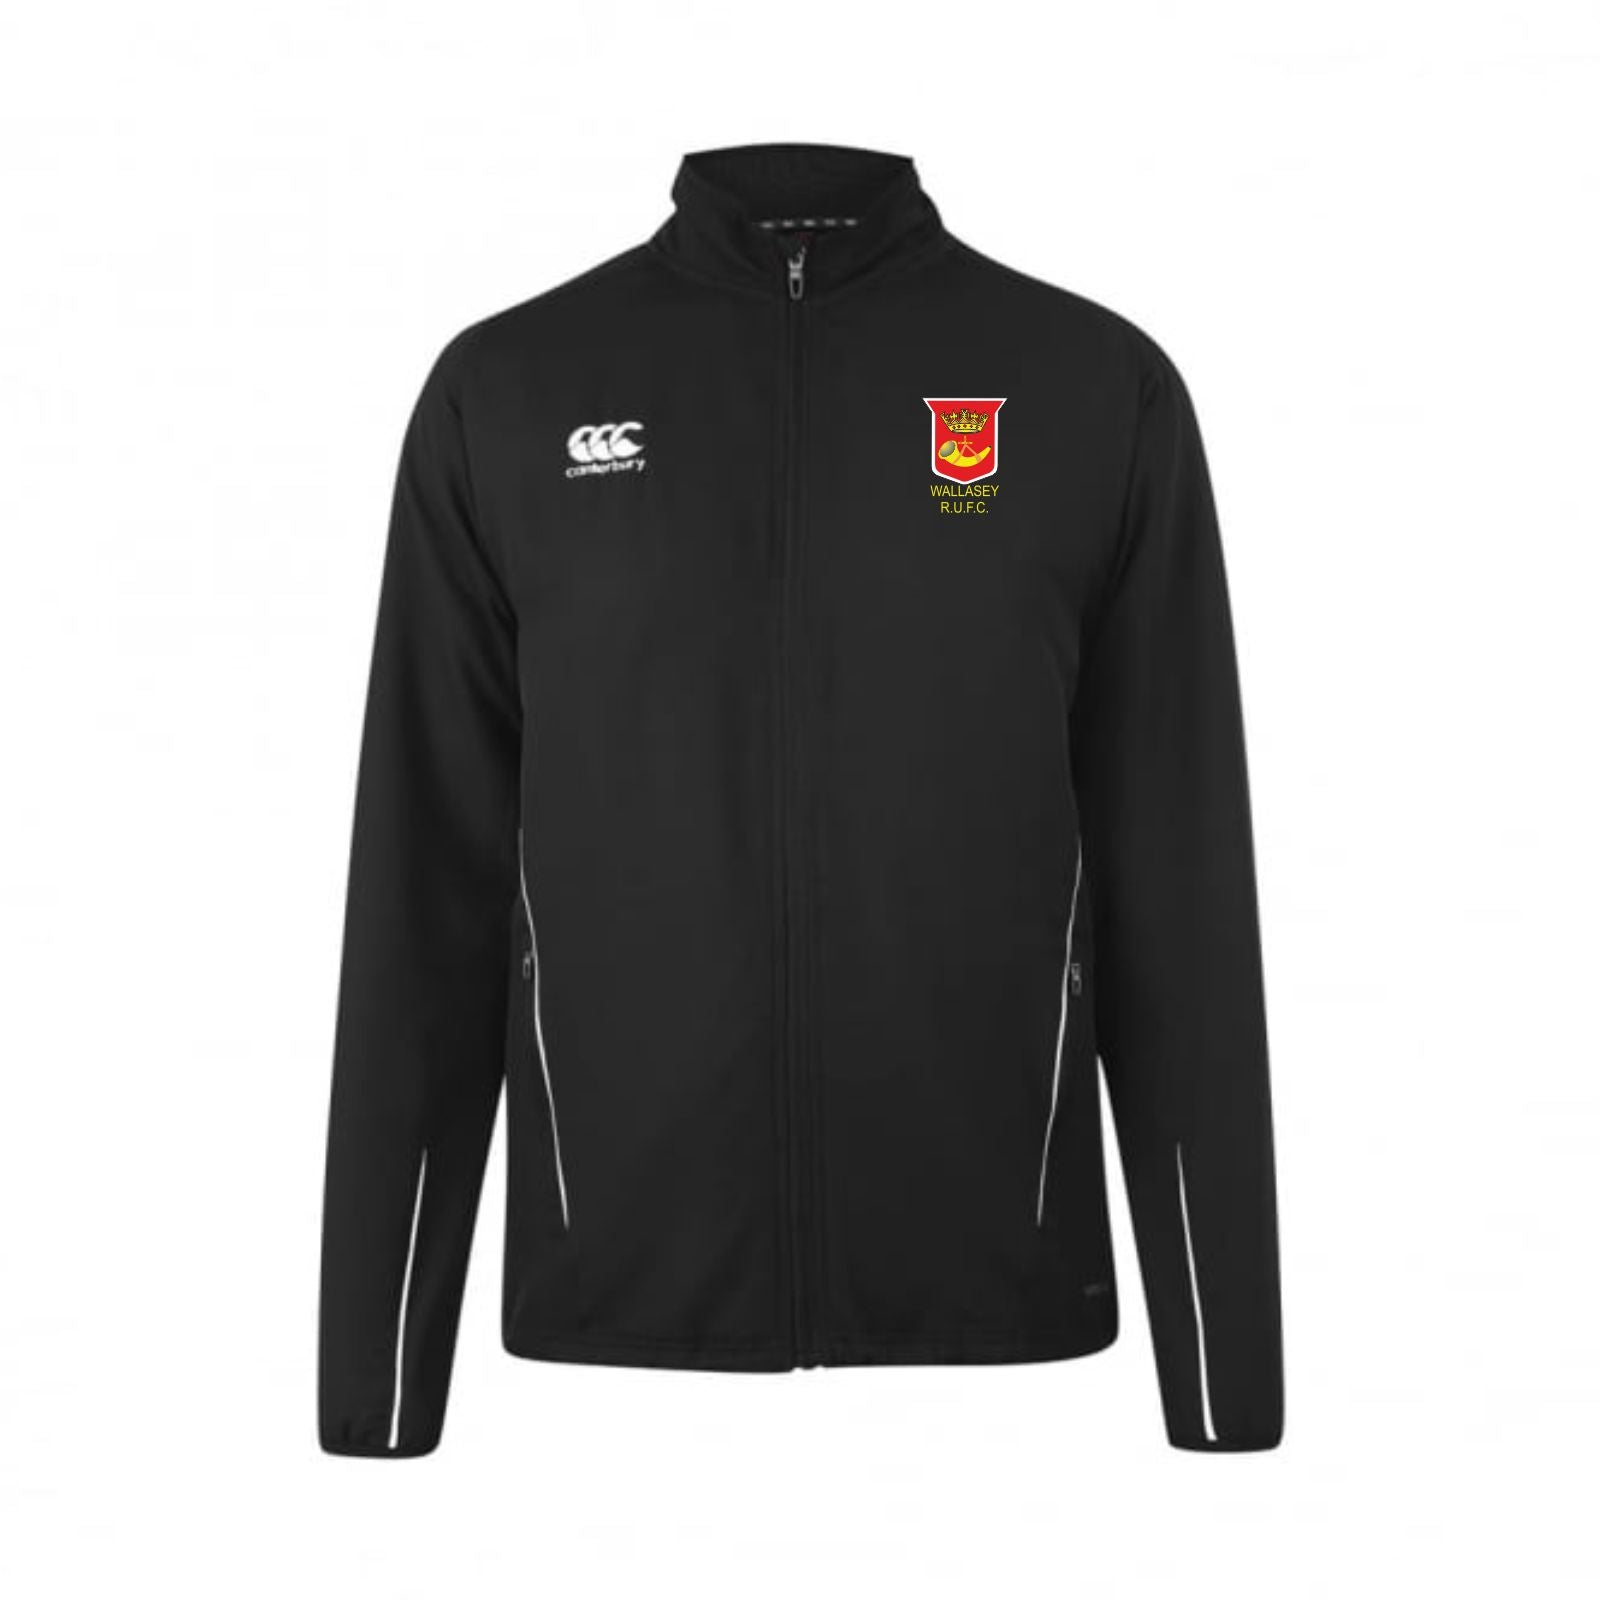 Wallasey RUFC CCC Team Track Jacket